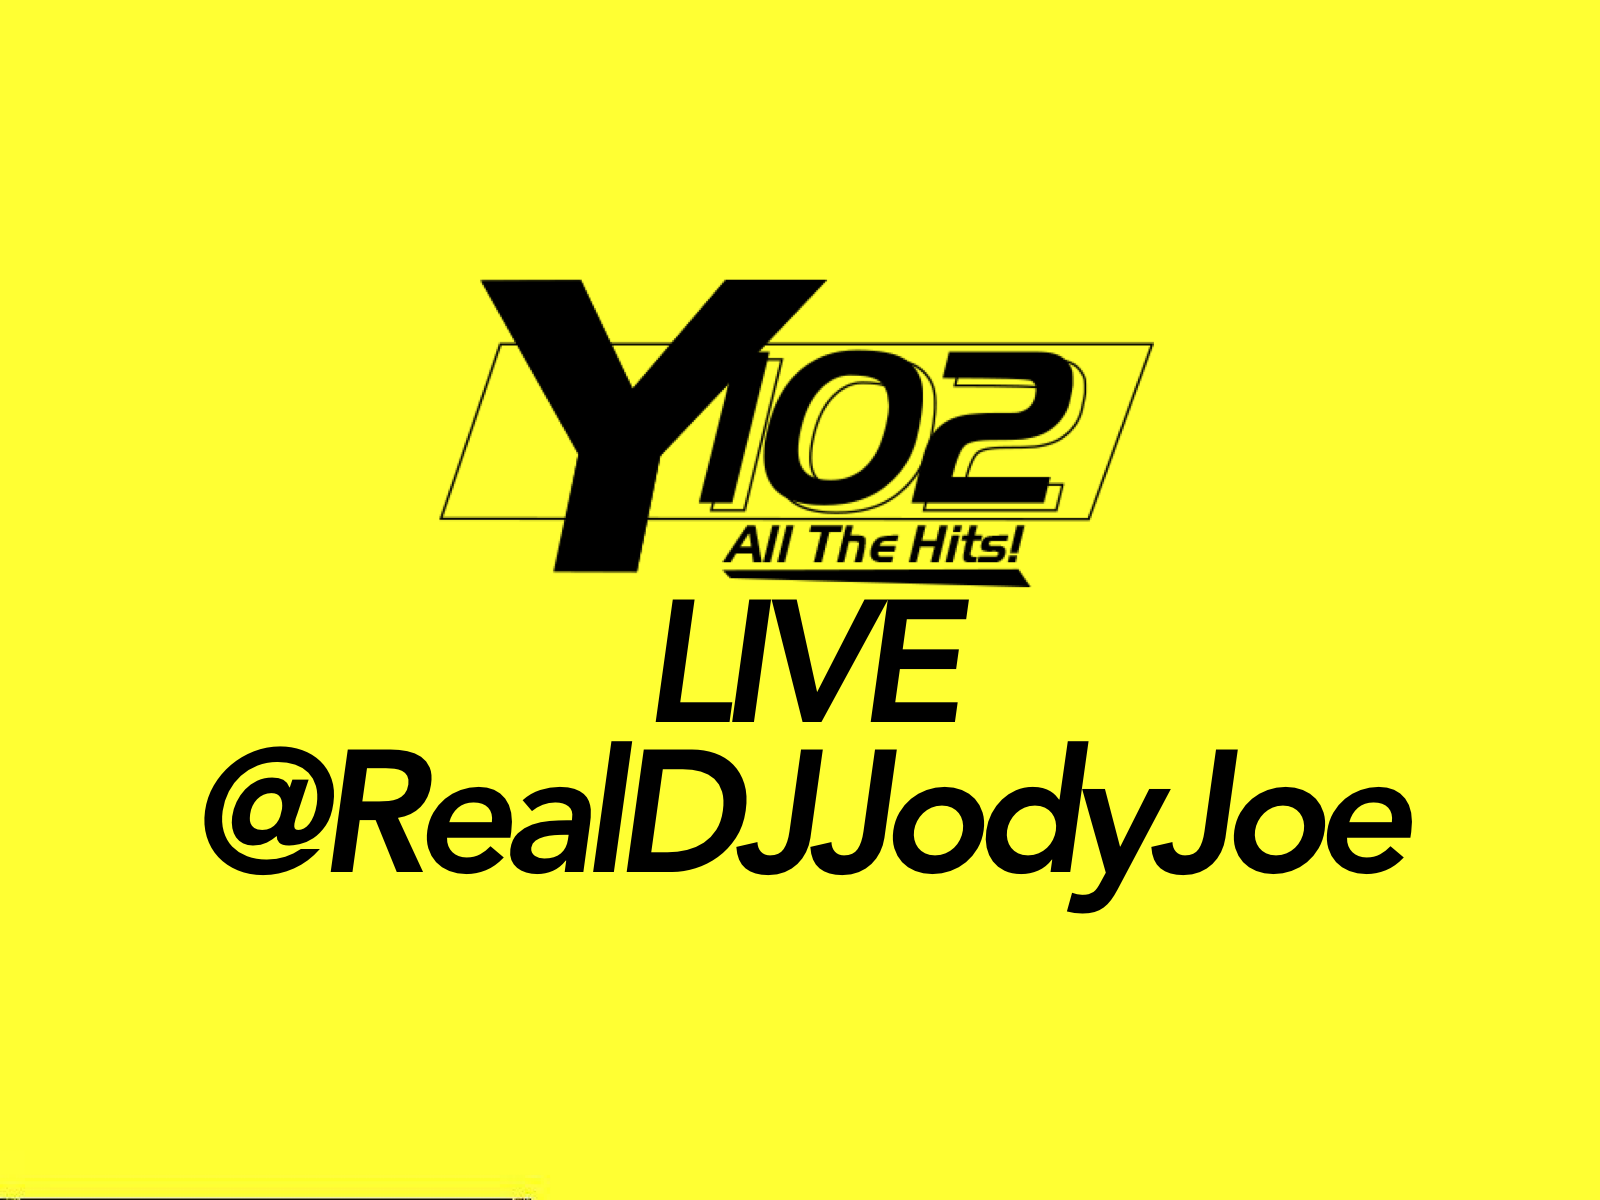 Y102 Live – All the Hits in the Mix @RealDJJodyJoe